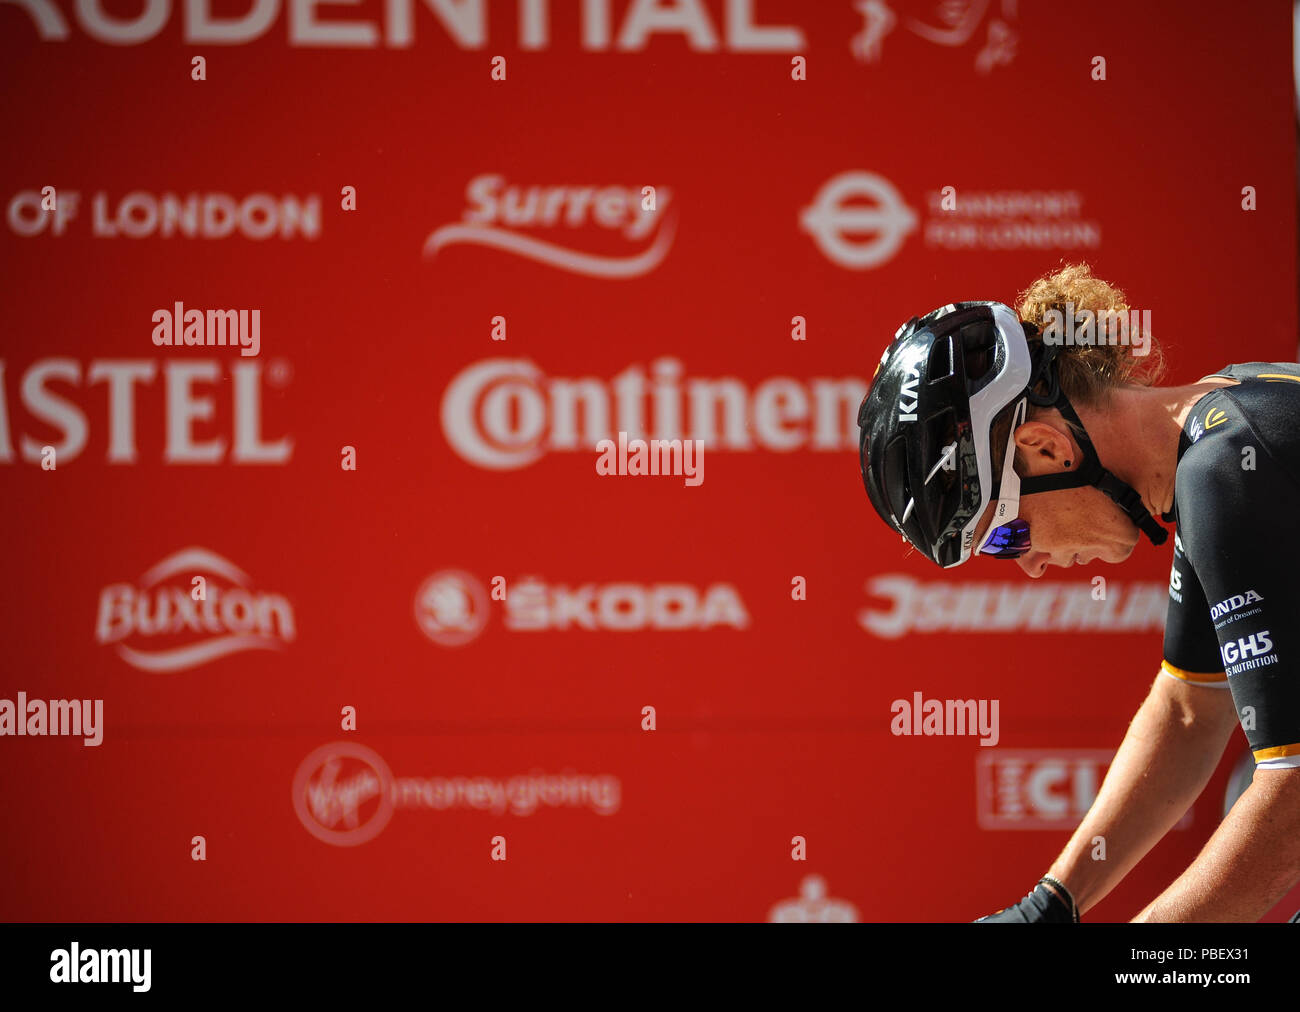 Central London, England, UK. 28th July 2018. Prudential RideLondon Classique. Kristen Wild, Wiggle High5, lines up on the Mall ahead of the Pro WomenÕs Criterium, the richest womenÕs one-day race in professional cycling and part of the Prudential RideLondon Festival of Cycling weekend. @ David Partridge / Alamy Live News Stock Photo